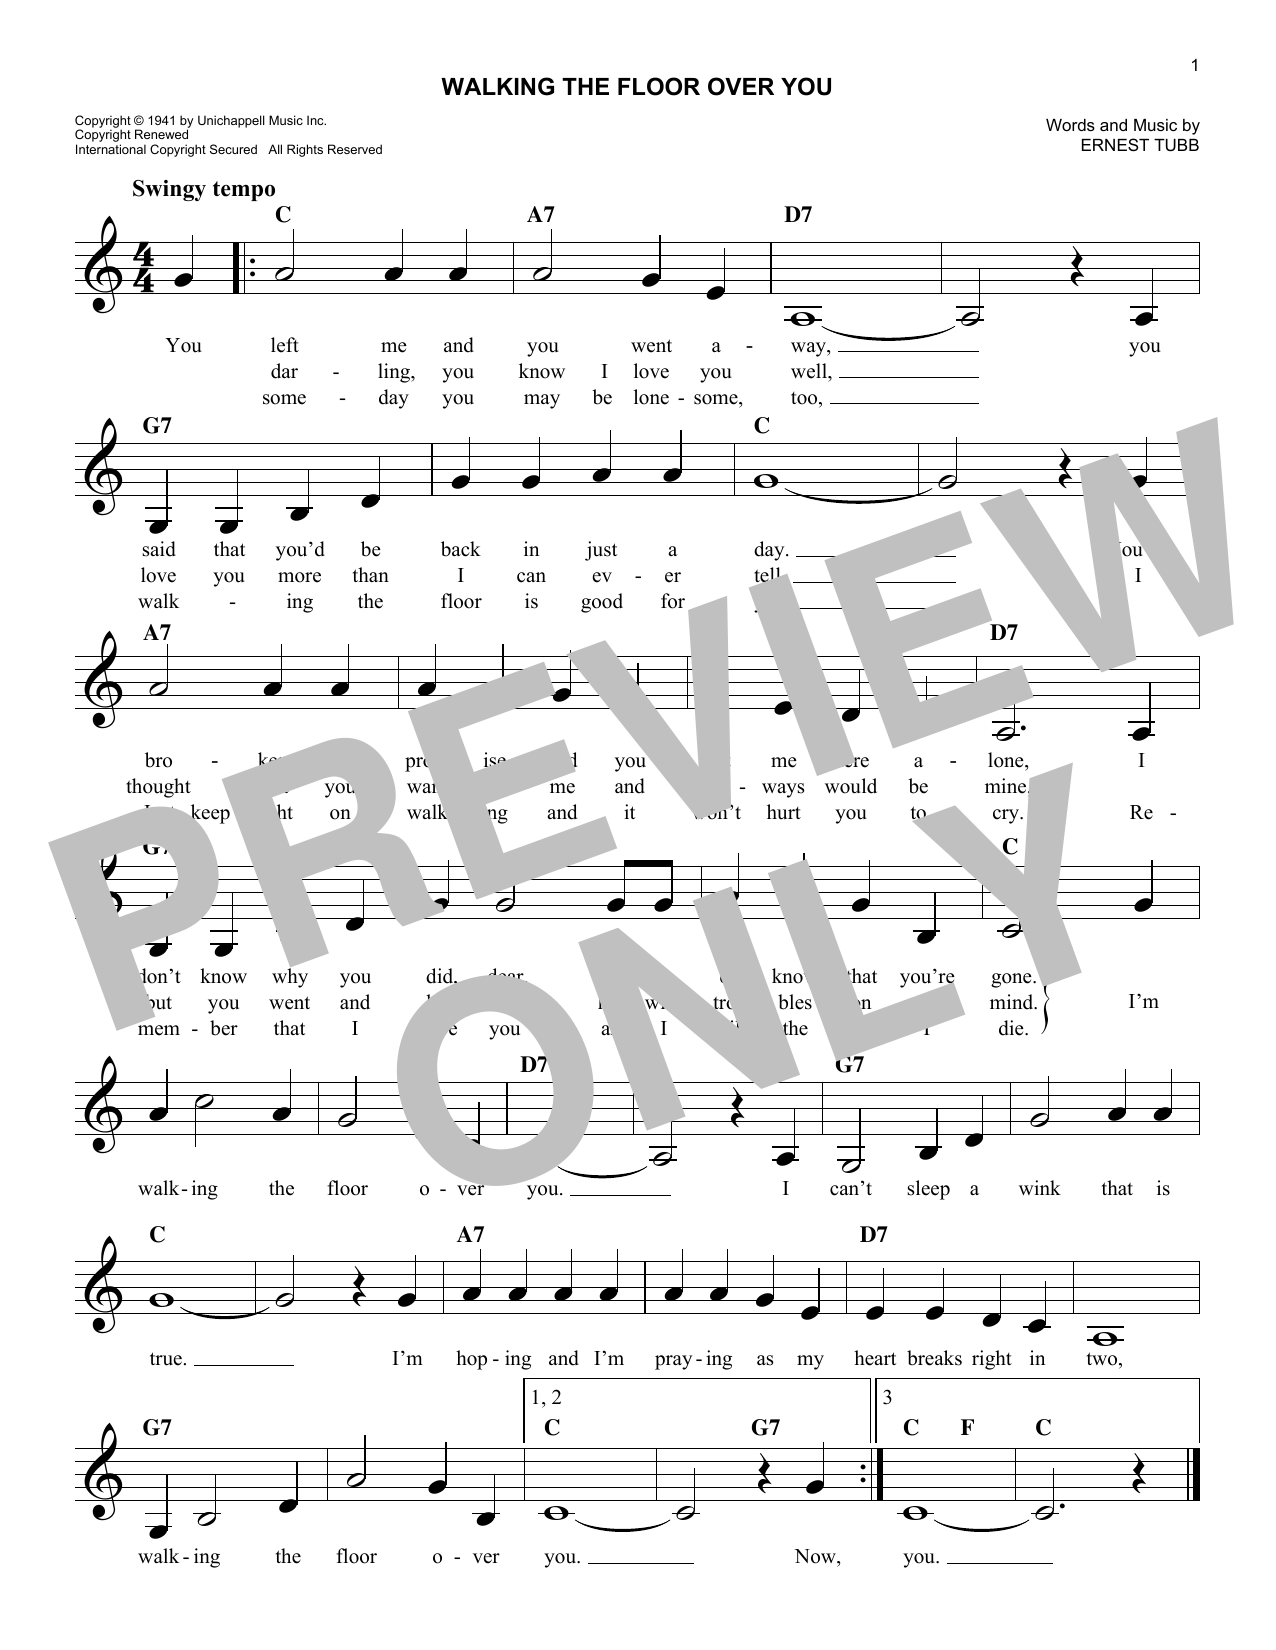 Ernest Tubb: Walking The Floor Over You   Melody Line, Lyrics U0026 Chords